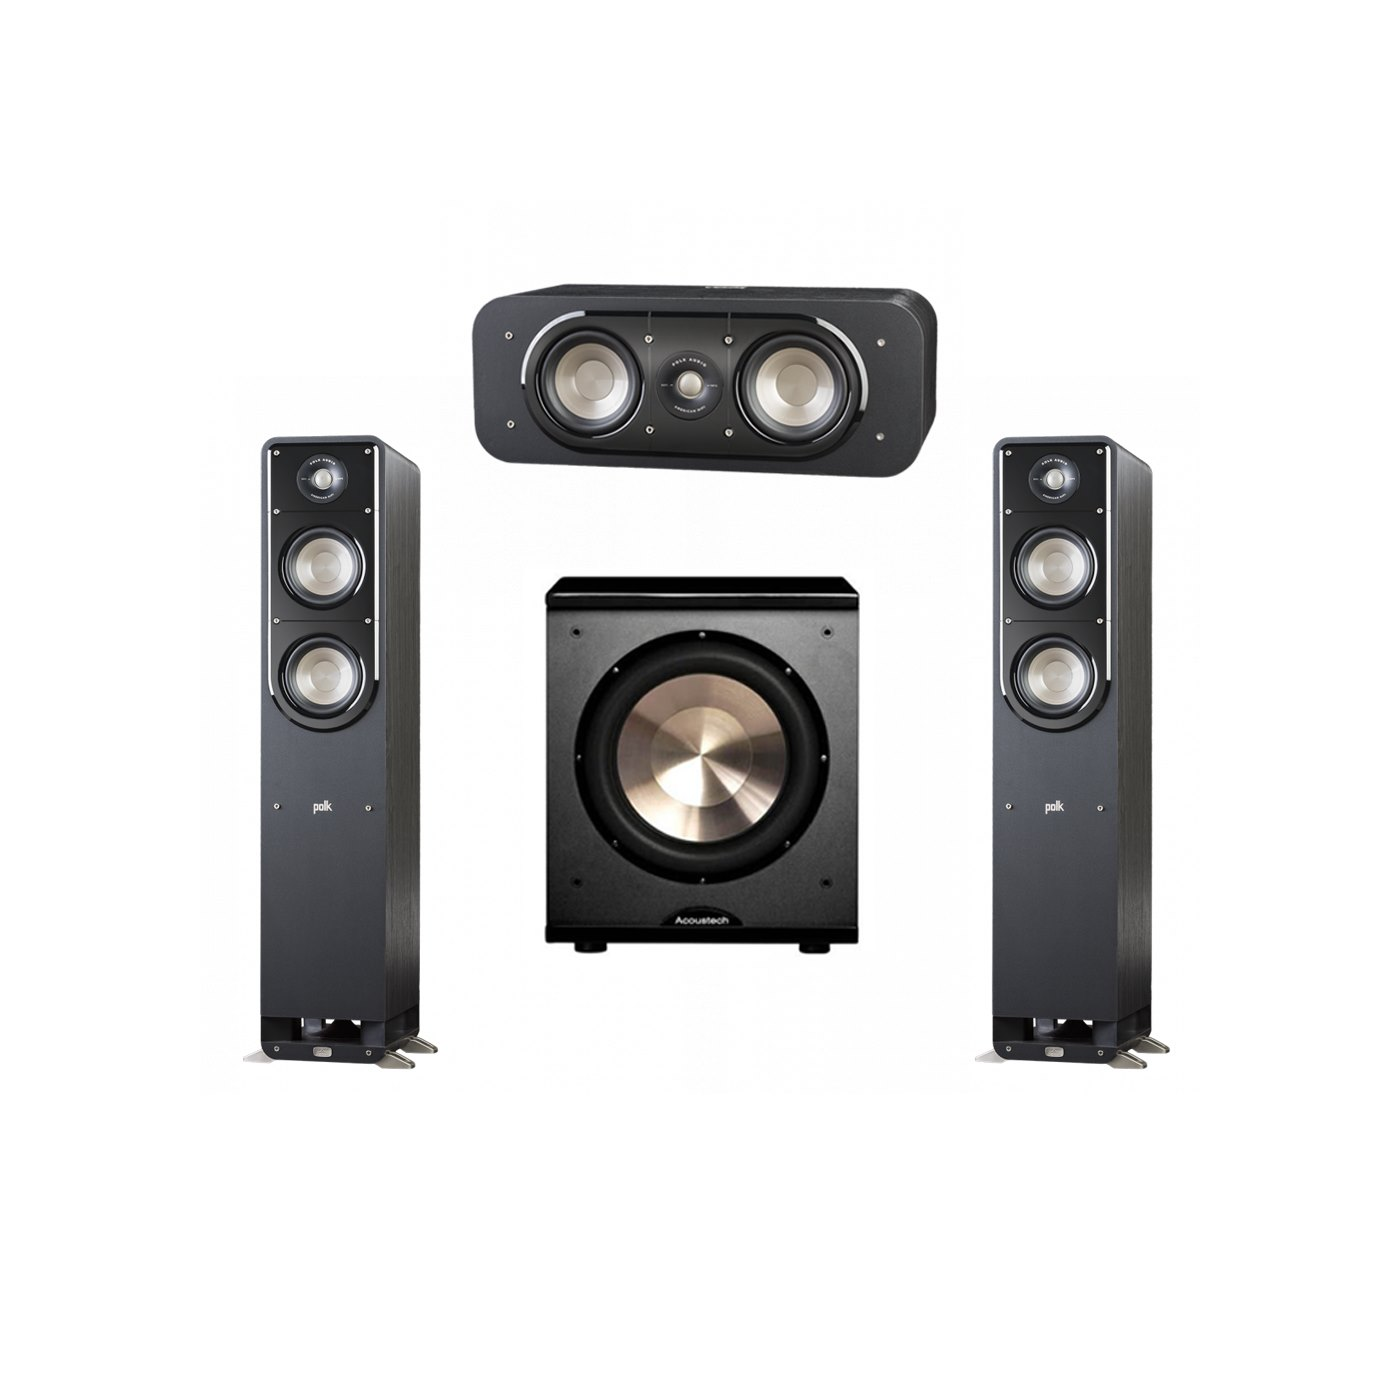 Polk Audio Signature 3.1 System with 2 S50 Tower Speaker, 1 Polk S30 Center Speaker, 1 BIC/Acoustech Platinum Series PL-200 Subwoofer